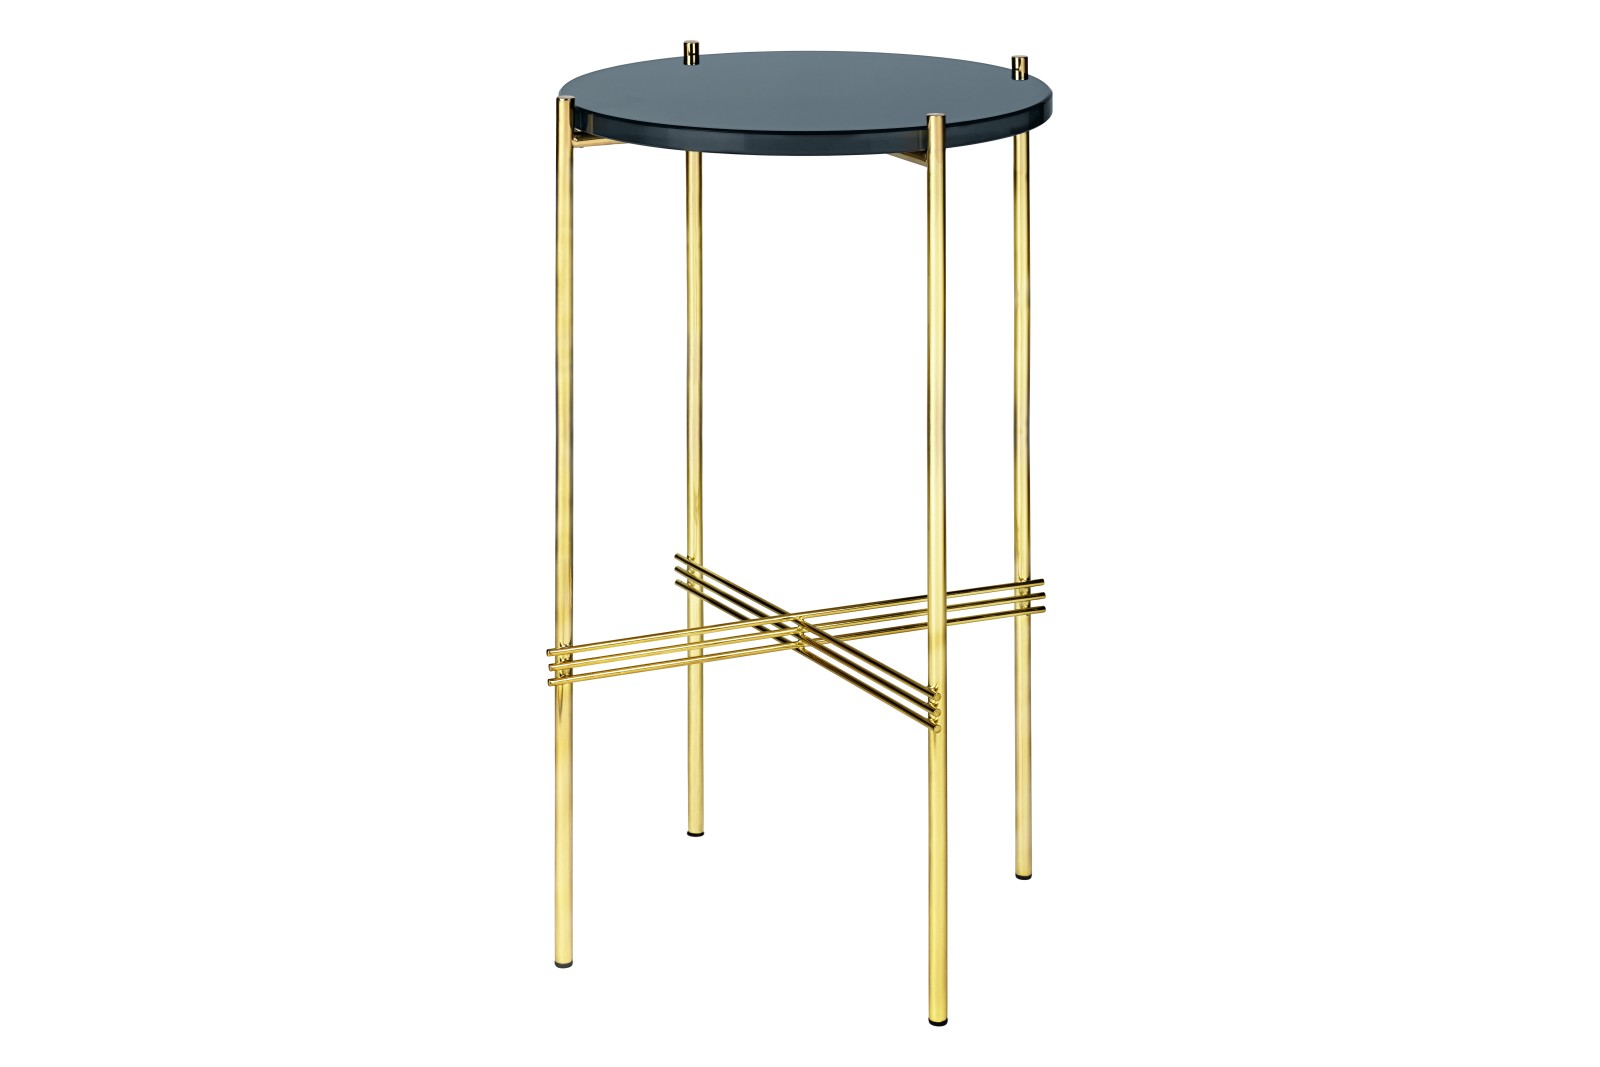 TS Round Console Table with Glass Top Grey Blue Top and Brass Frame